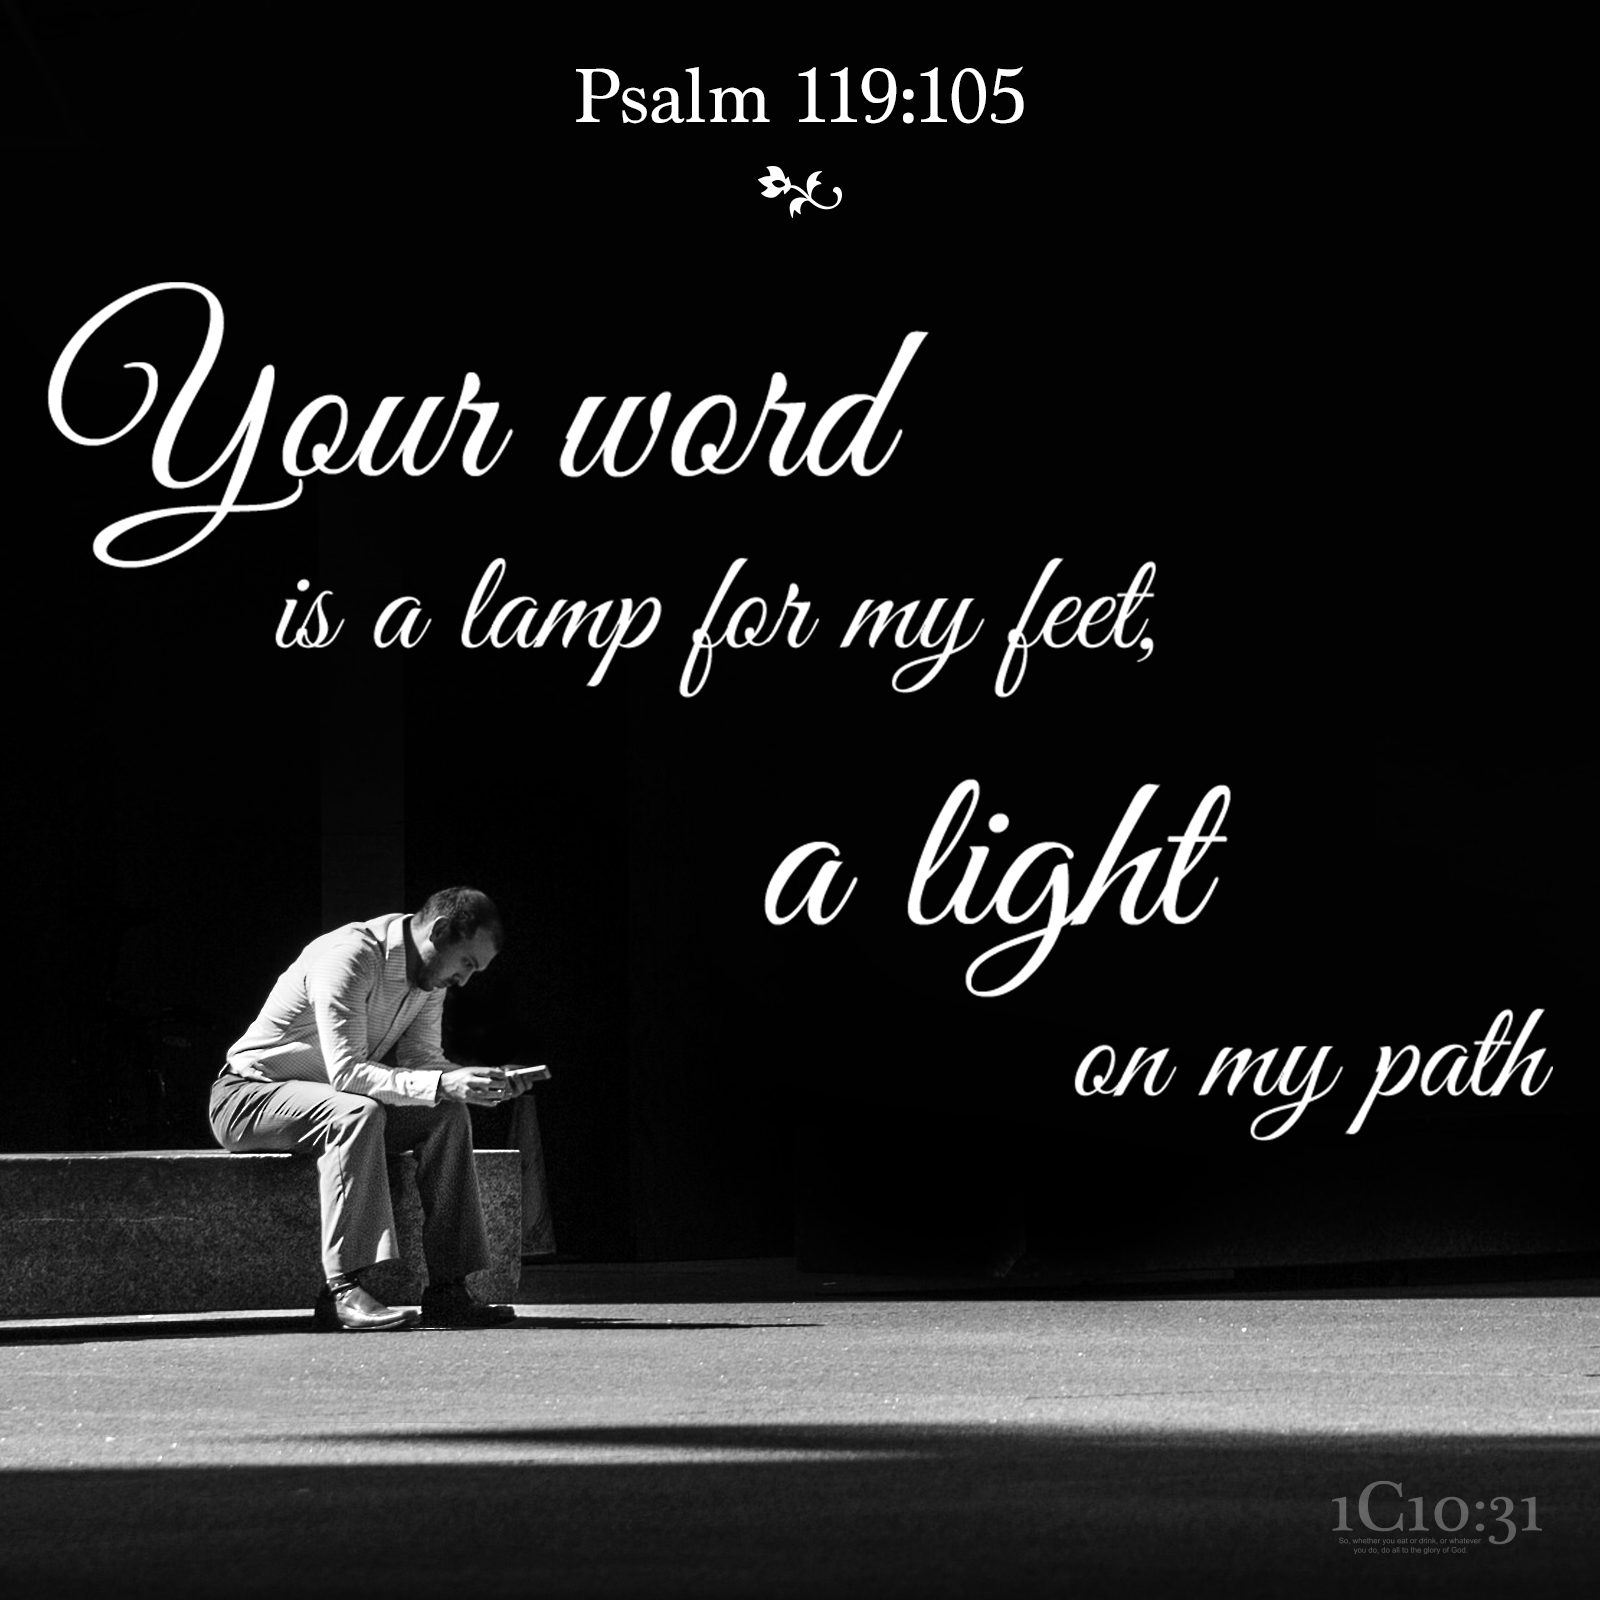 Psalm 119:105 Your word is a lamp for my feet, a light on my path.